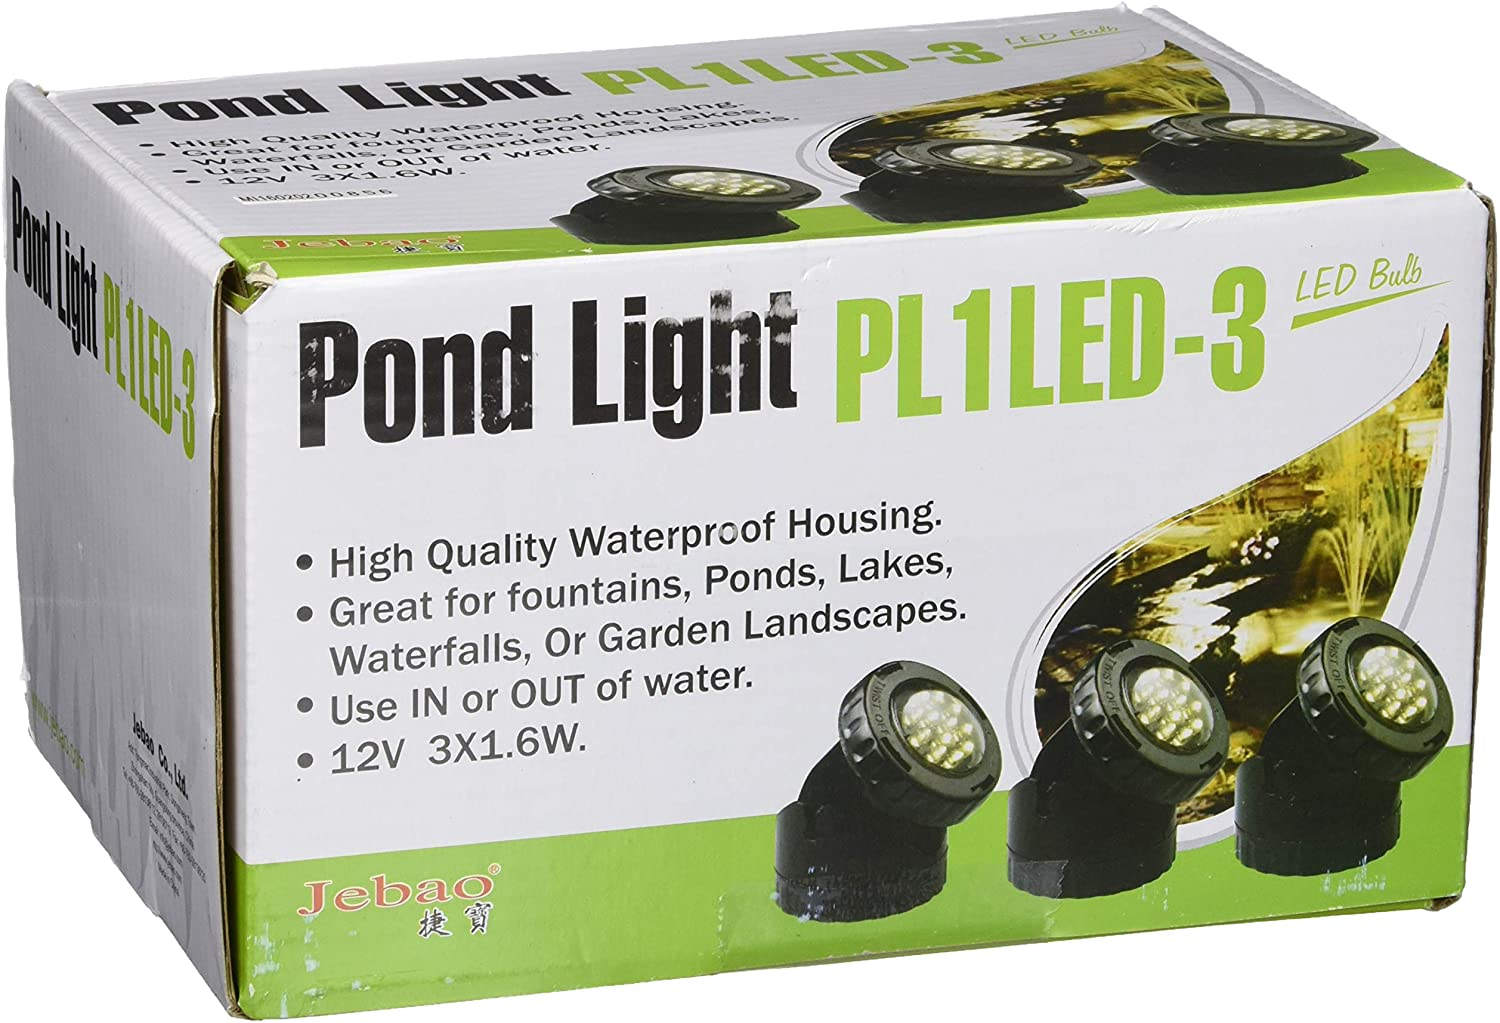 Jebao PL1LED-3PS Submersible LED Pond Light with Photcell Sensor, 2.25